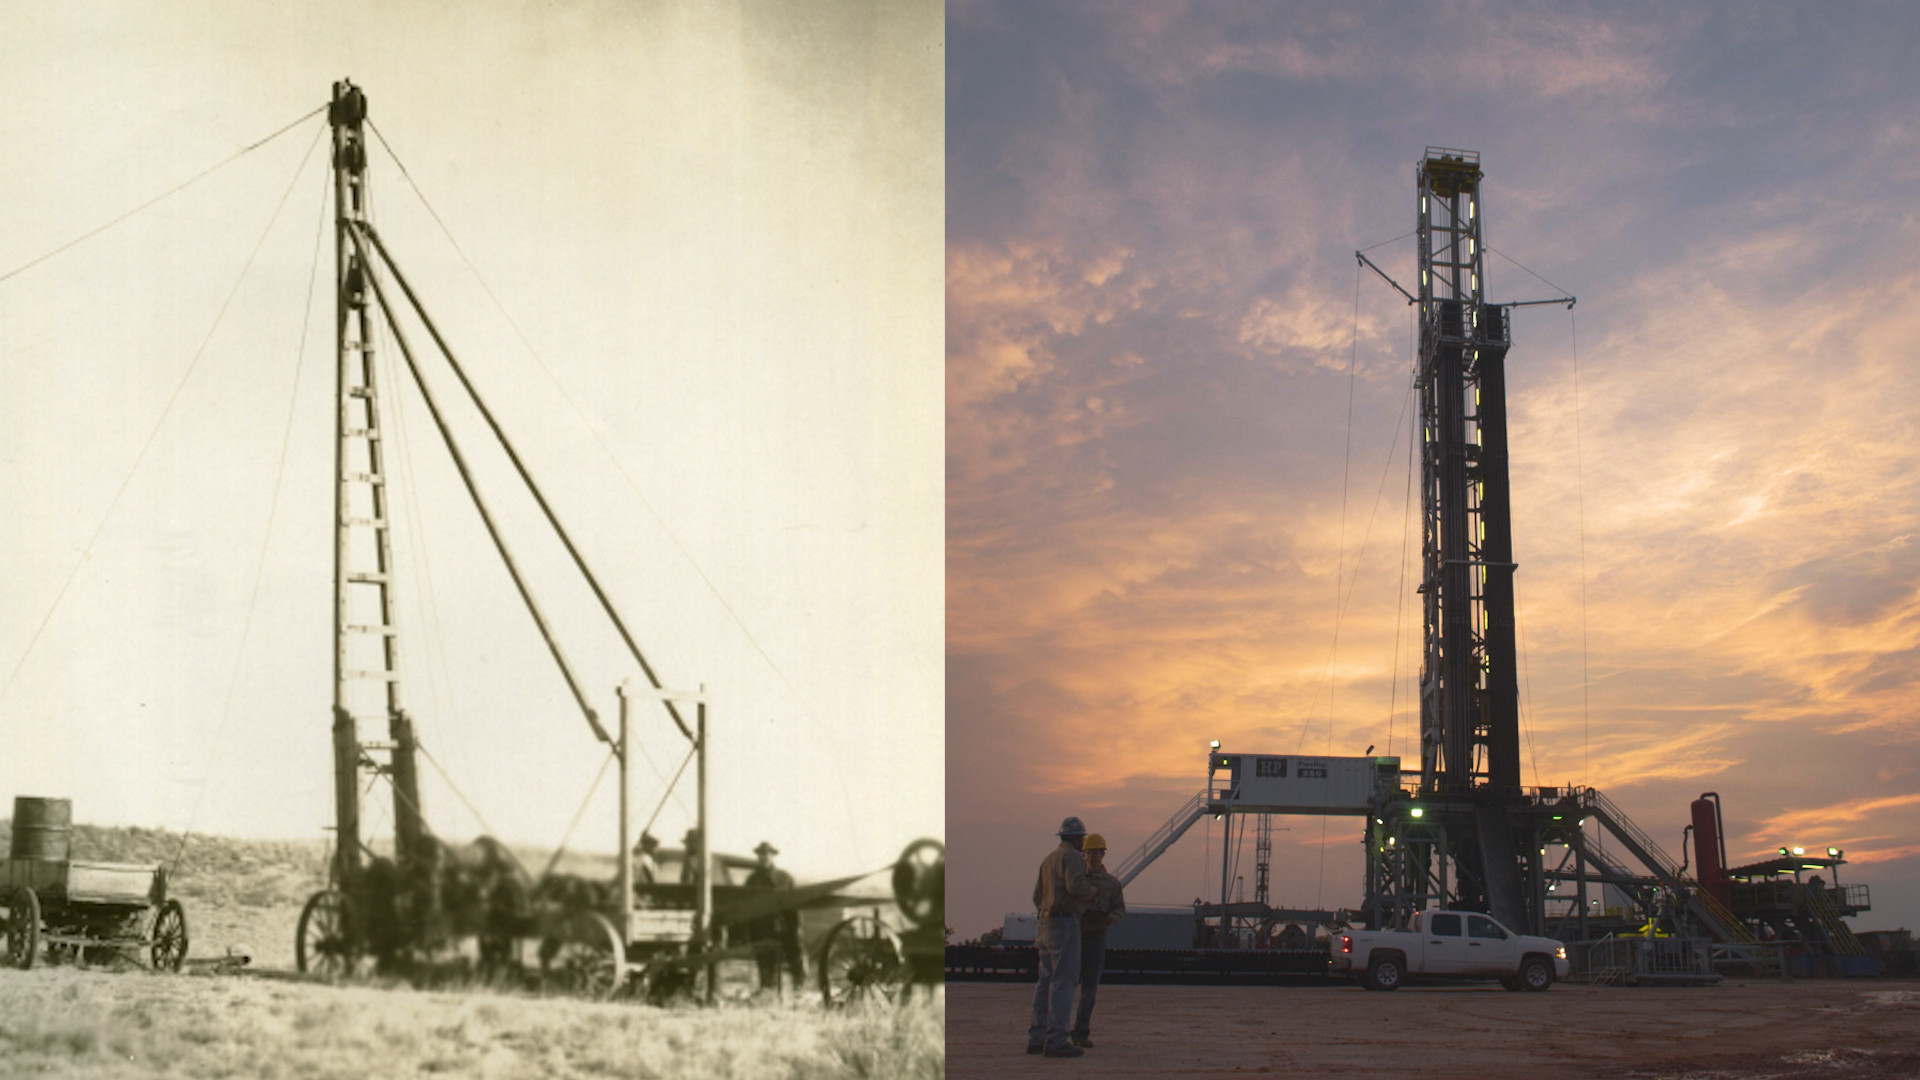 1920x1080 Evolution of a Drilling Rig